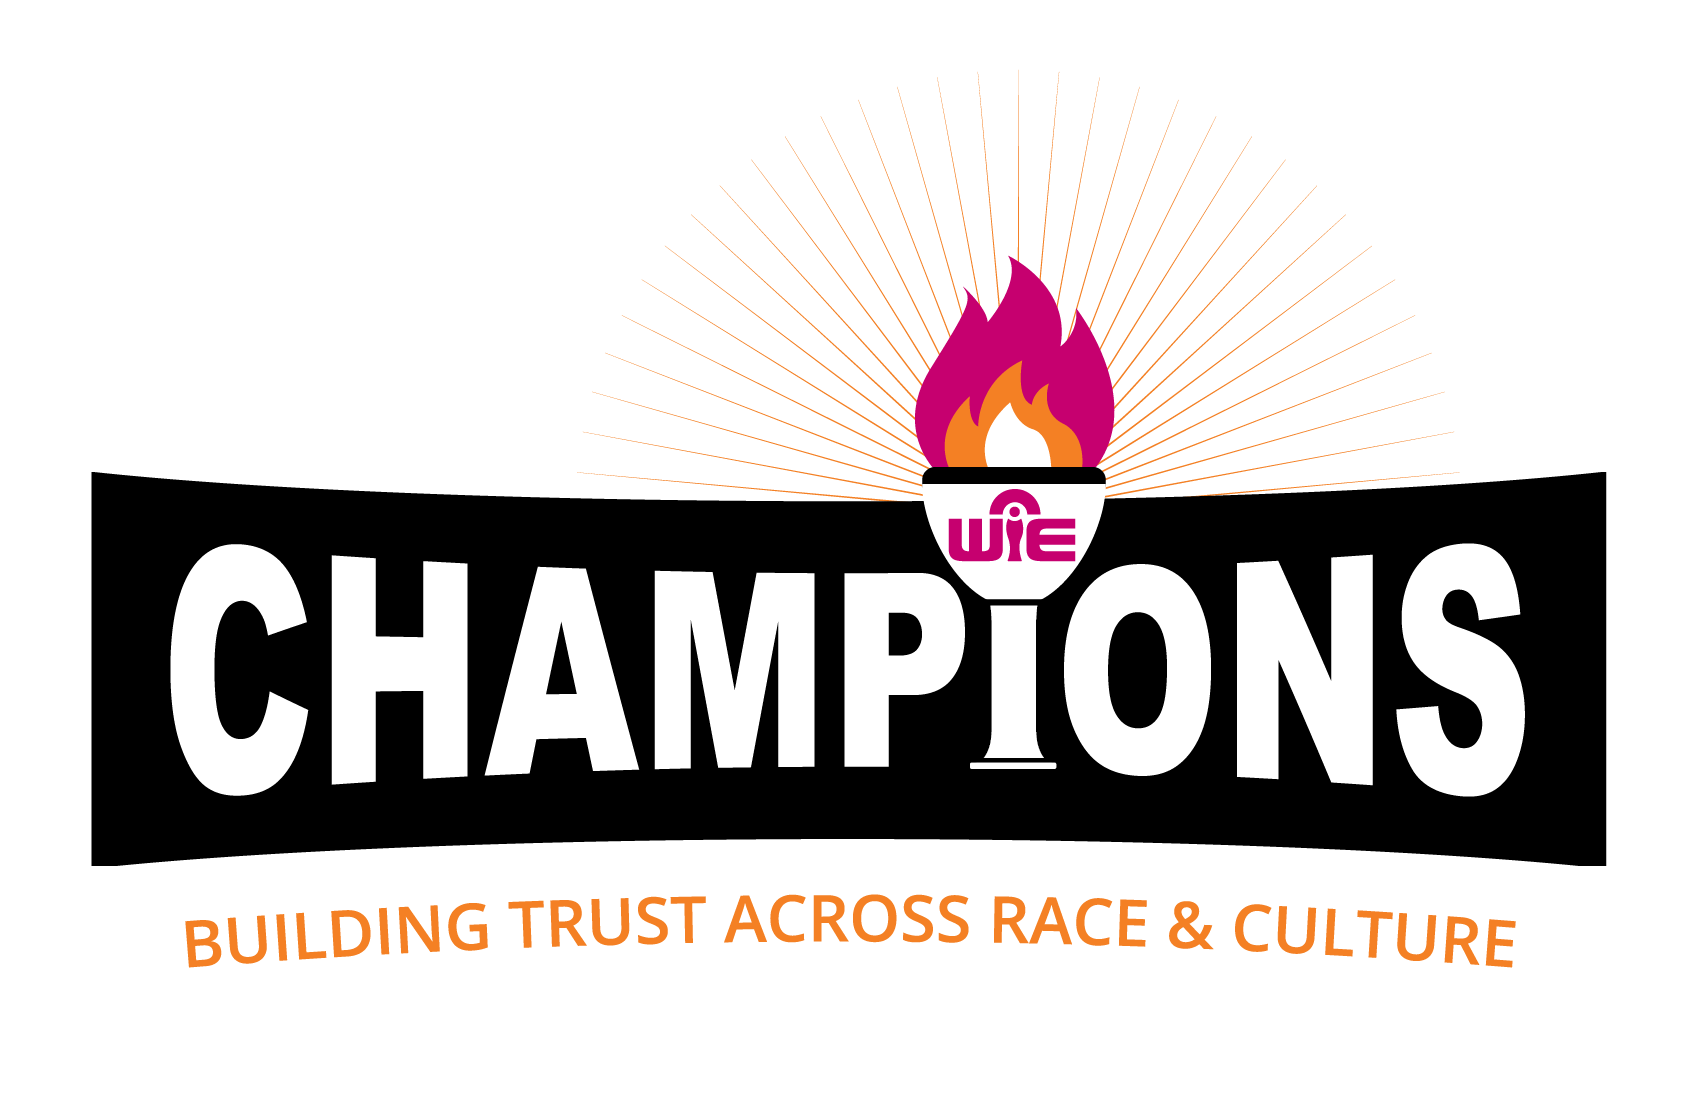 Champions Logo PNG